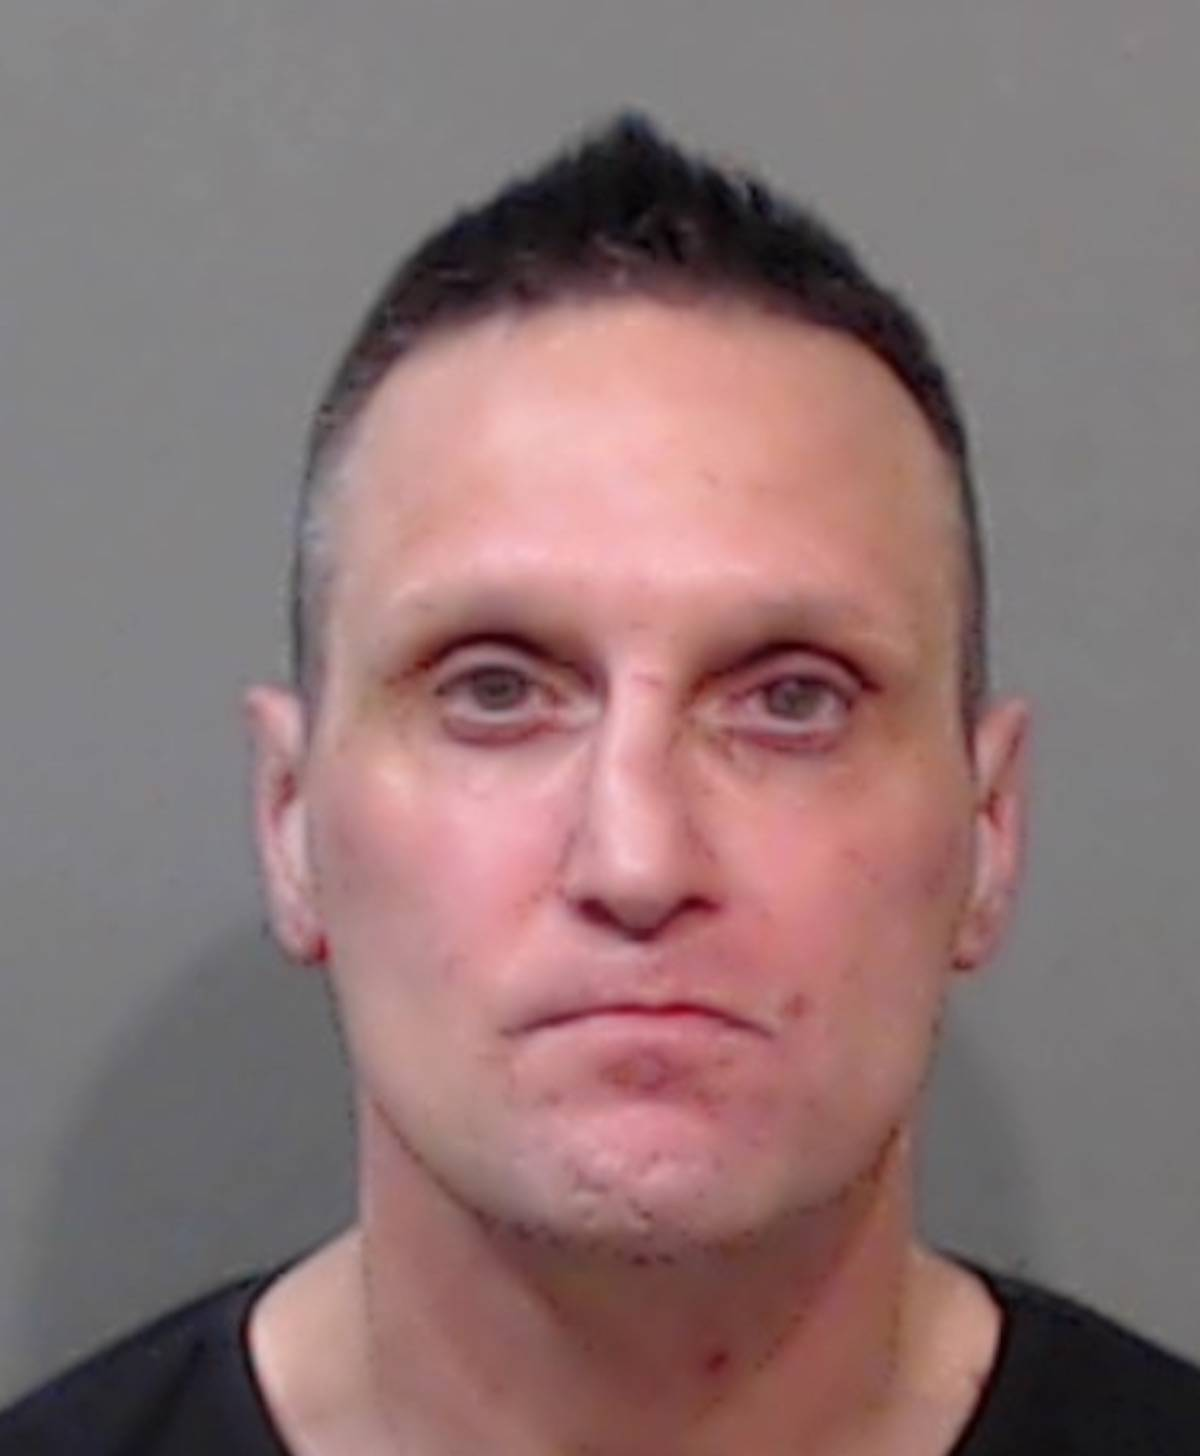 """Name: DELAYER, Robert Age: 44 Height: 5'11"""" ft Weight: 177 lbs Hair: Brown Eyes: Green Wanted: Possess Firearm while Prohibited Warrant in effect: June 22, 2021 Parole Jurisdiction: Chilliwack, BC"""